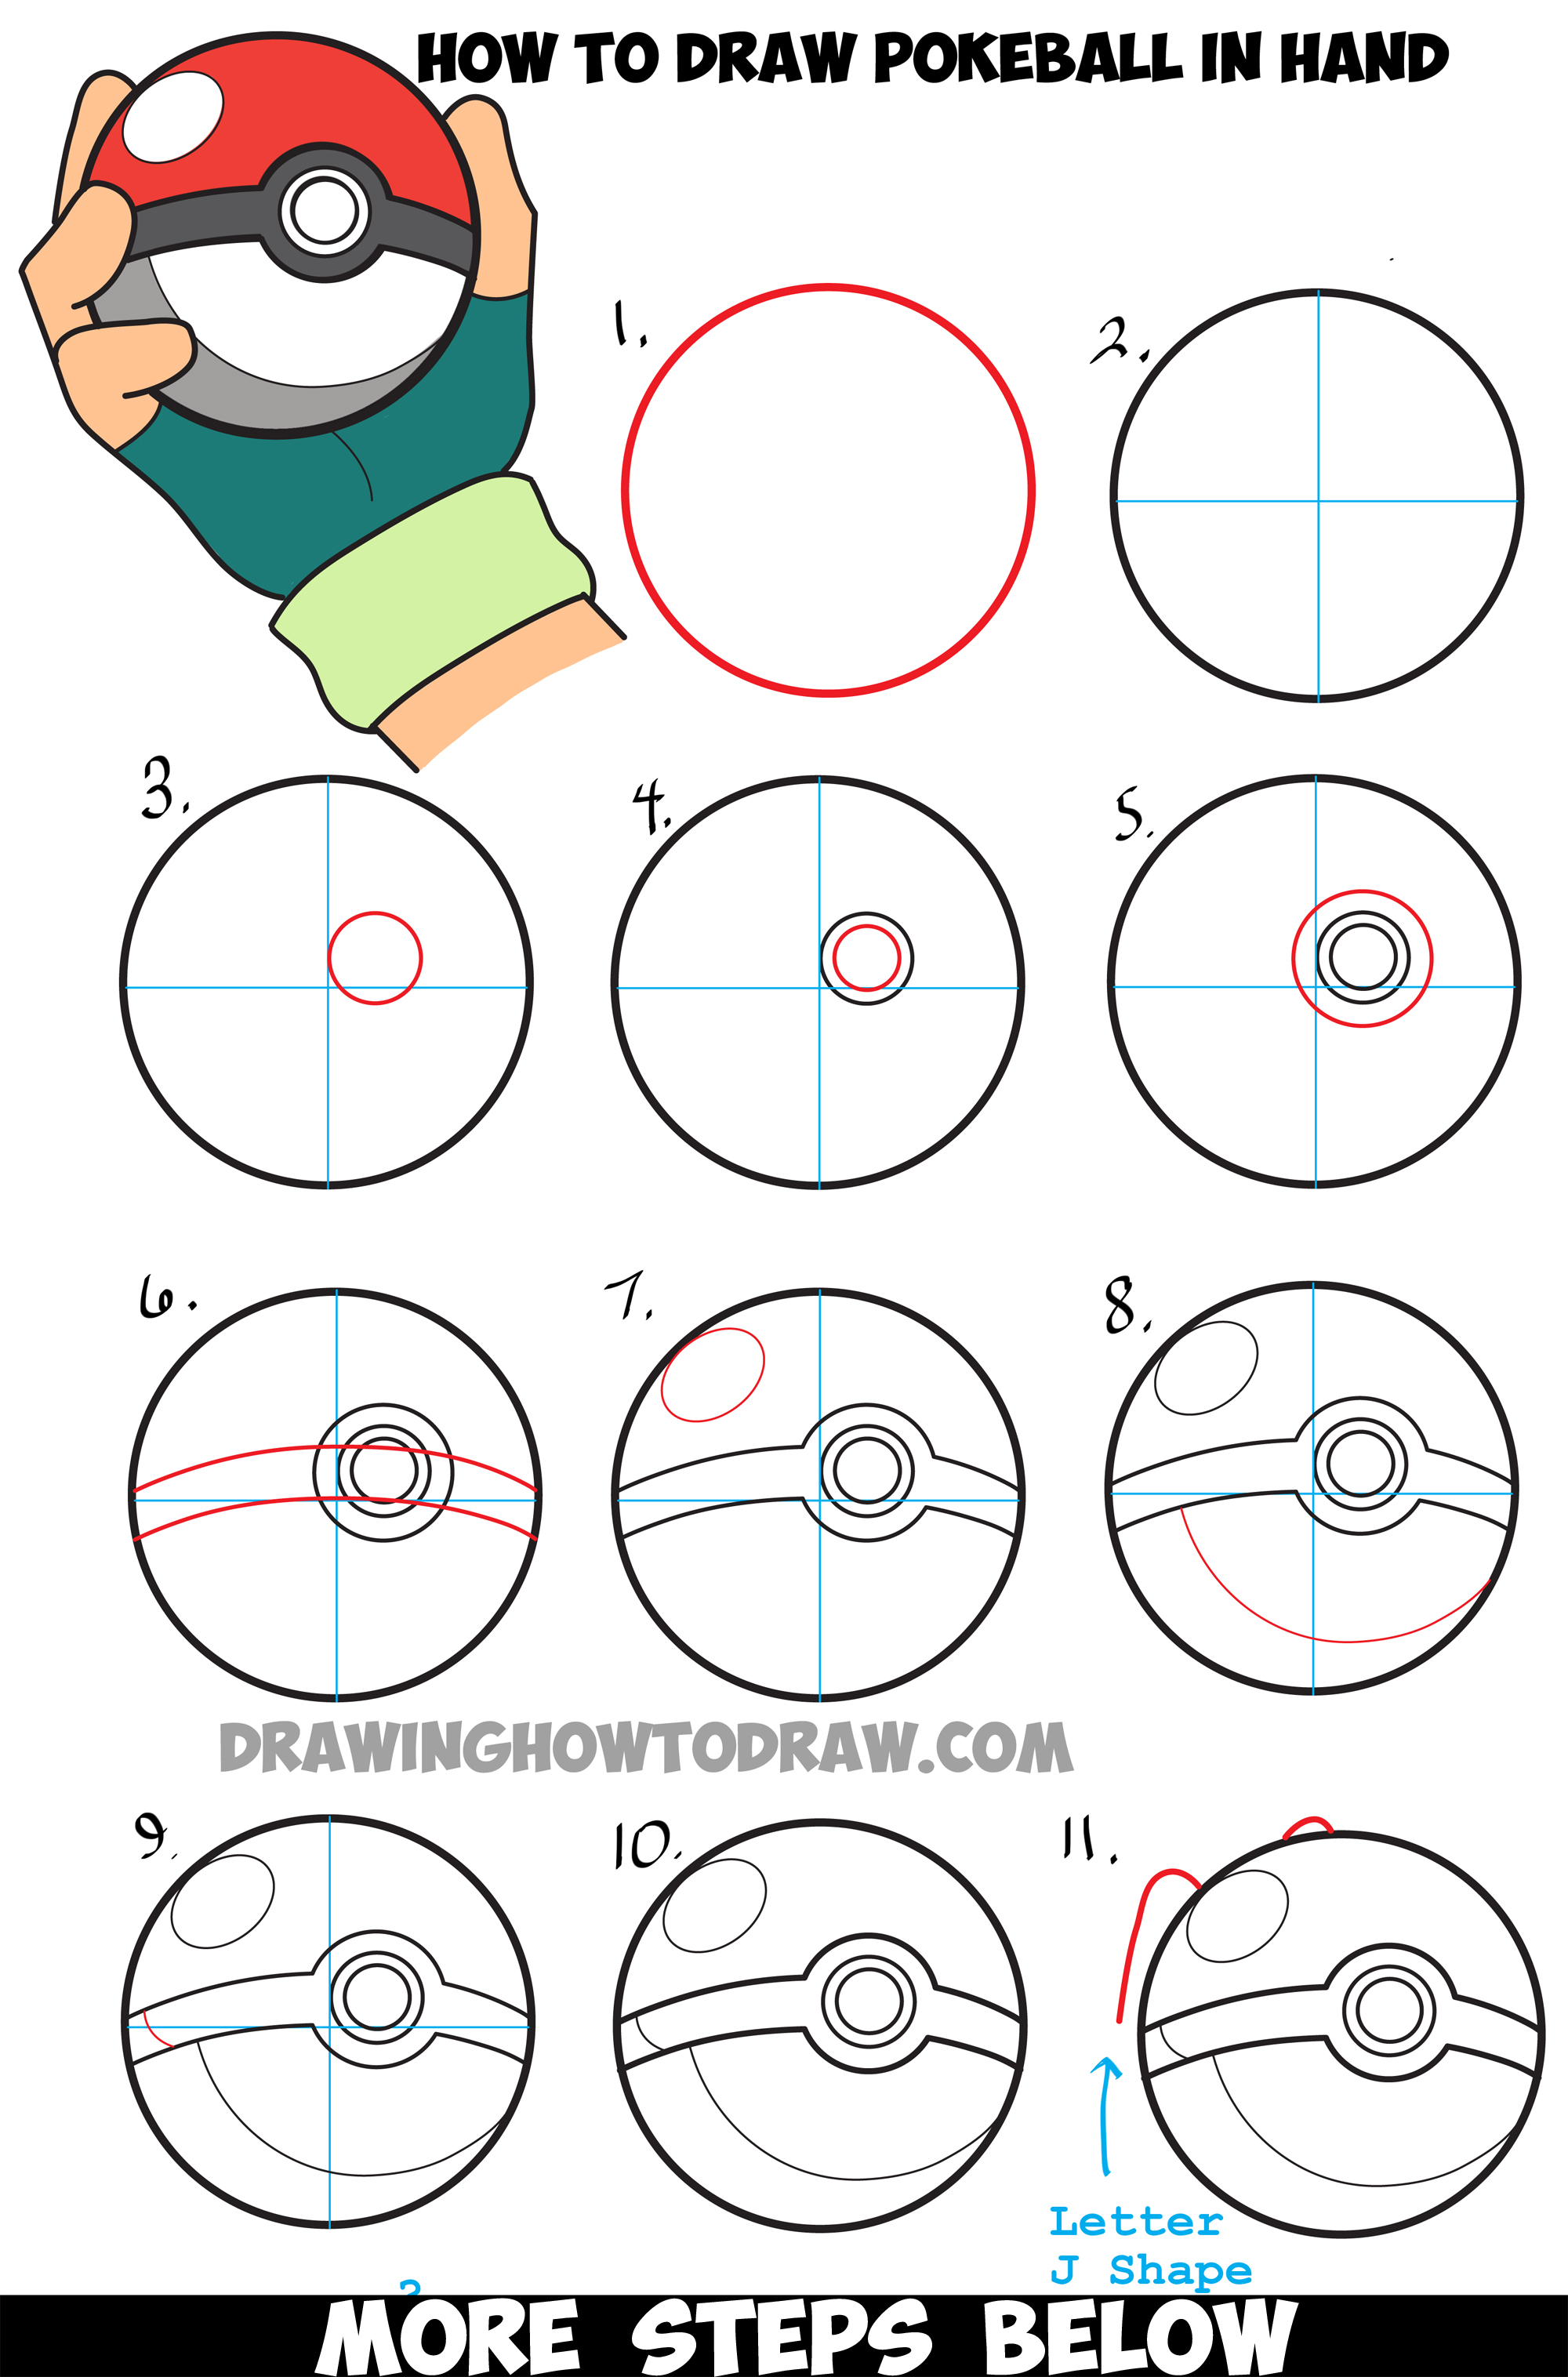 How to draw pokeball in ash 39 s hand step by step pokemon for How to draw things step by step